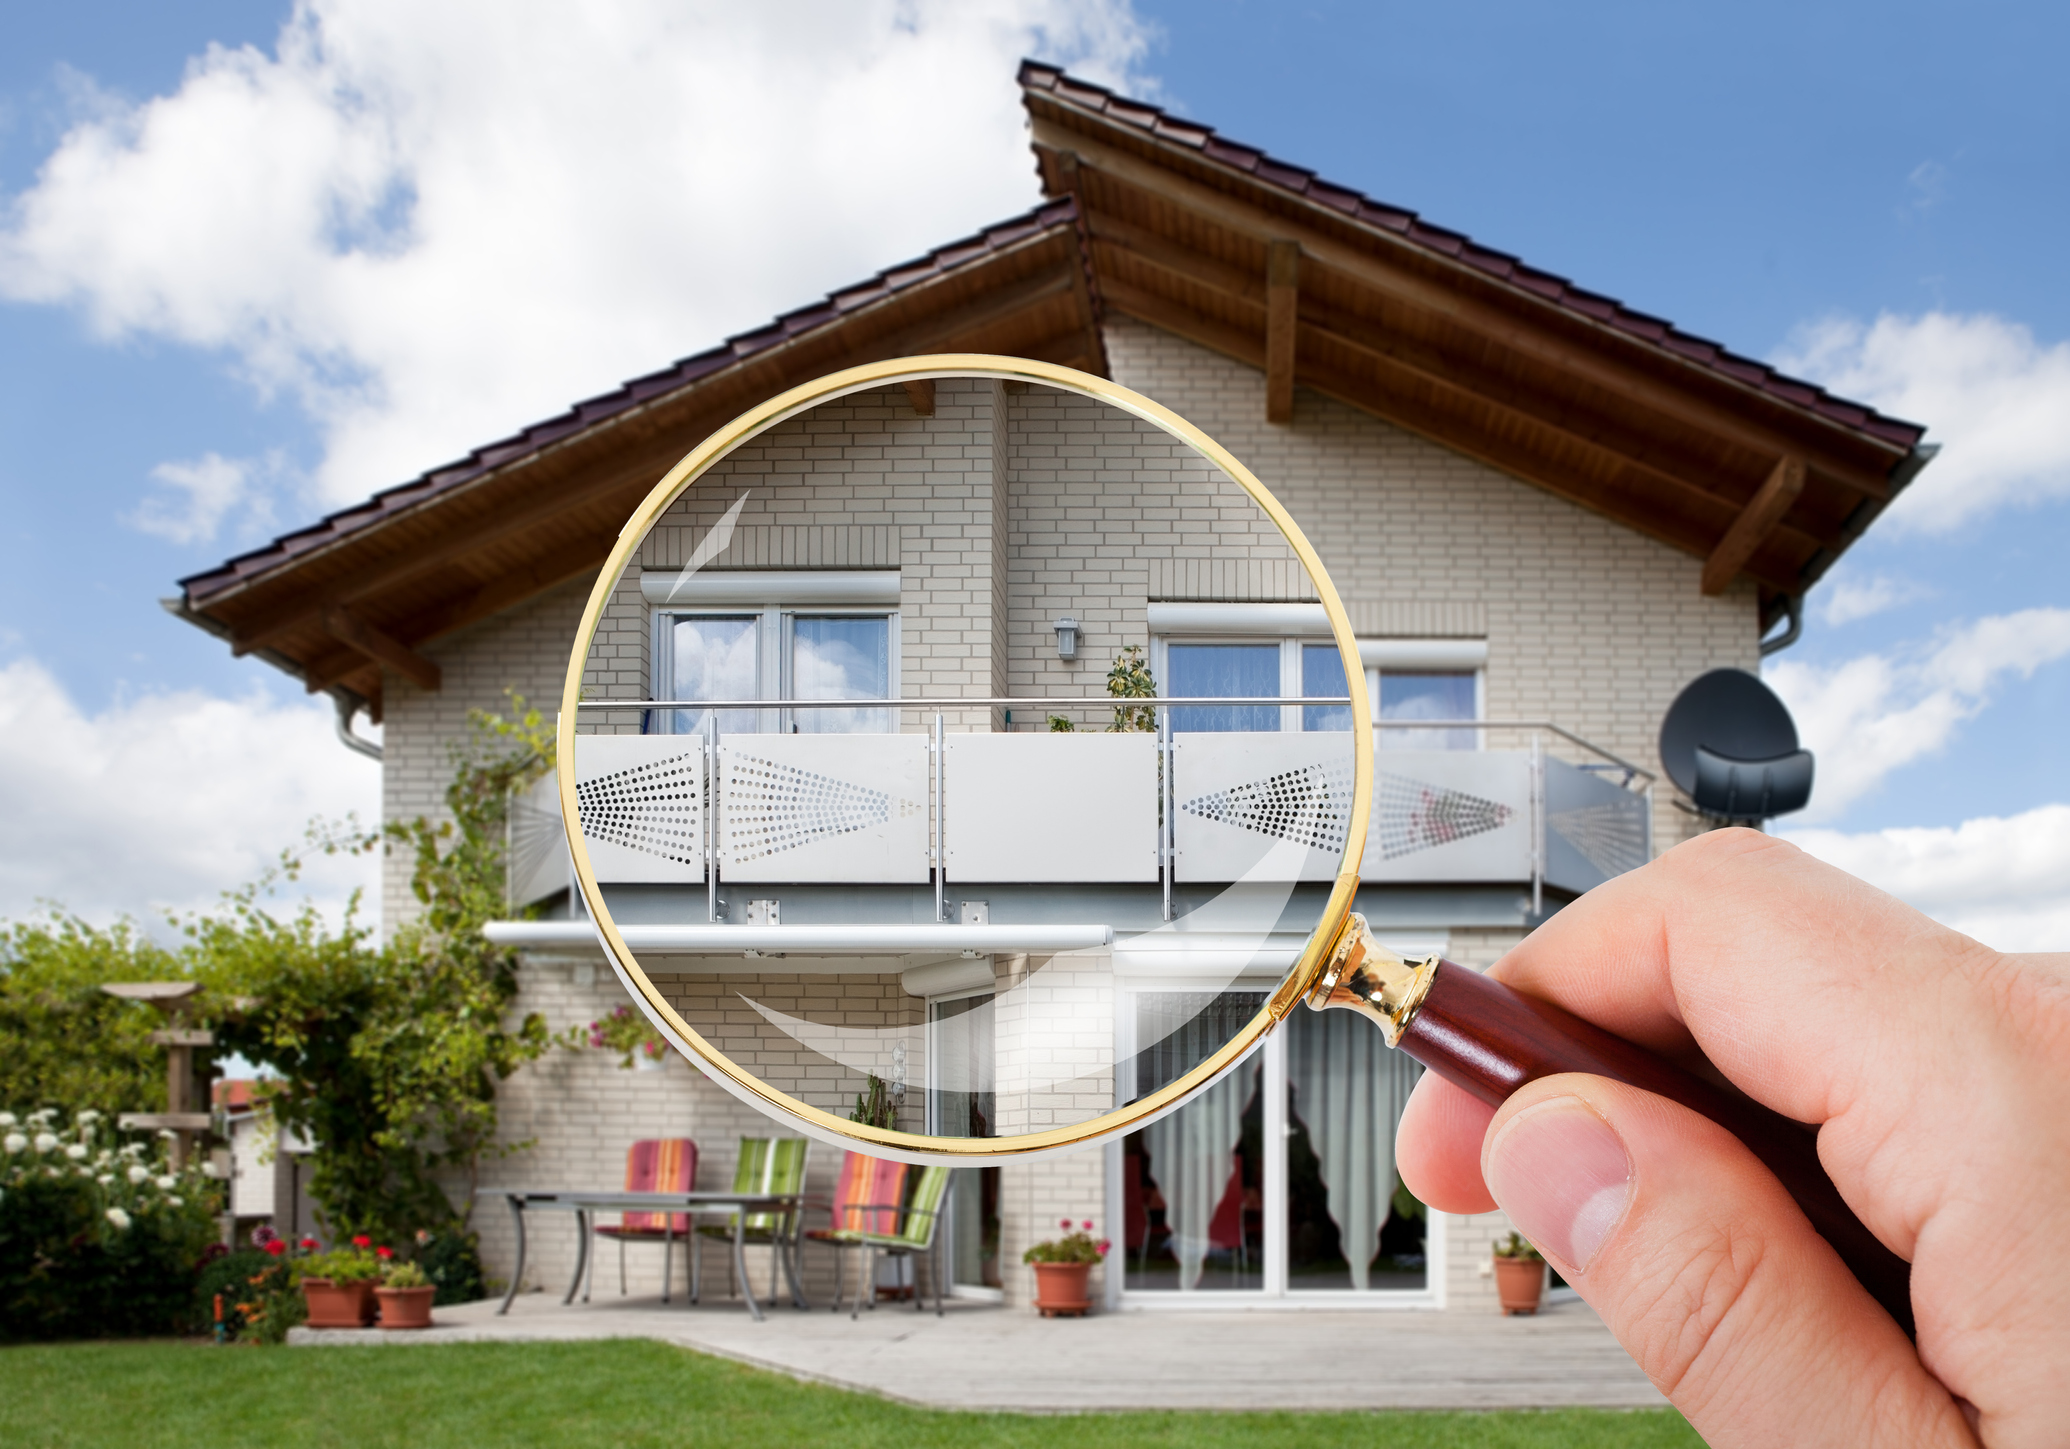 Our Services - What do our Building Inspections Include?